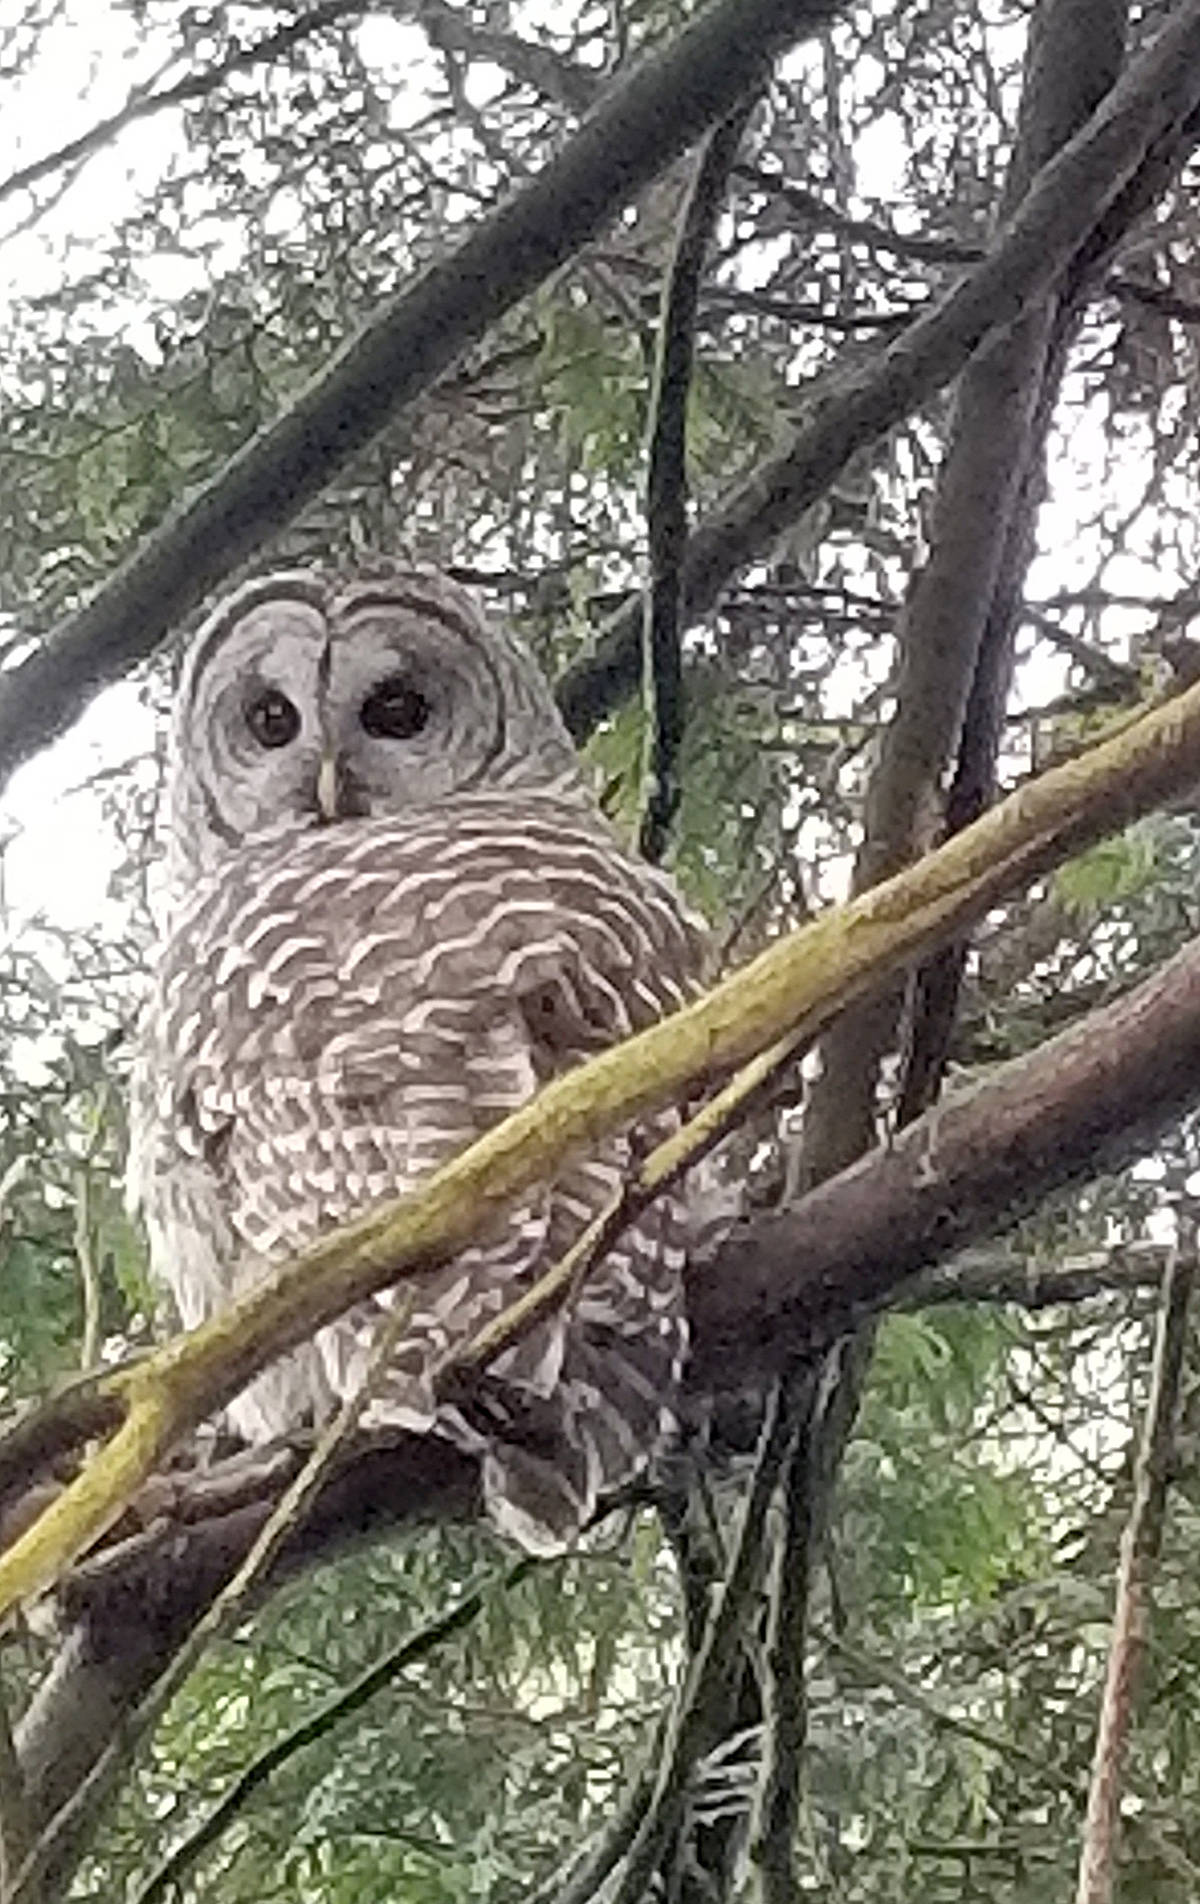 Jackie Beveridge snapped a variety of wildlife shots in her front and backyards in Brookswood, either with her SLR or camera phone. They include her favourite, the Douglas squirrels, a random garter snake she saved from a crow, and a young barred owl that hangs out around the ravine near their home. (Special to the Langley Advance)